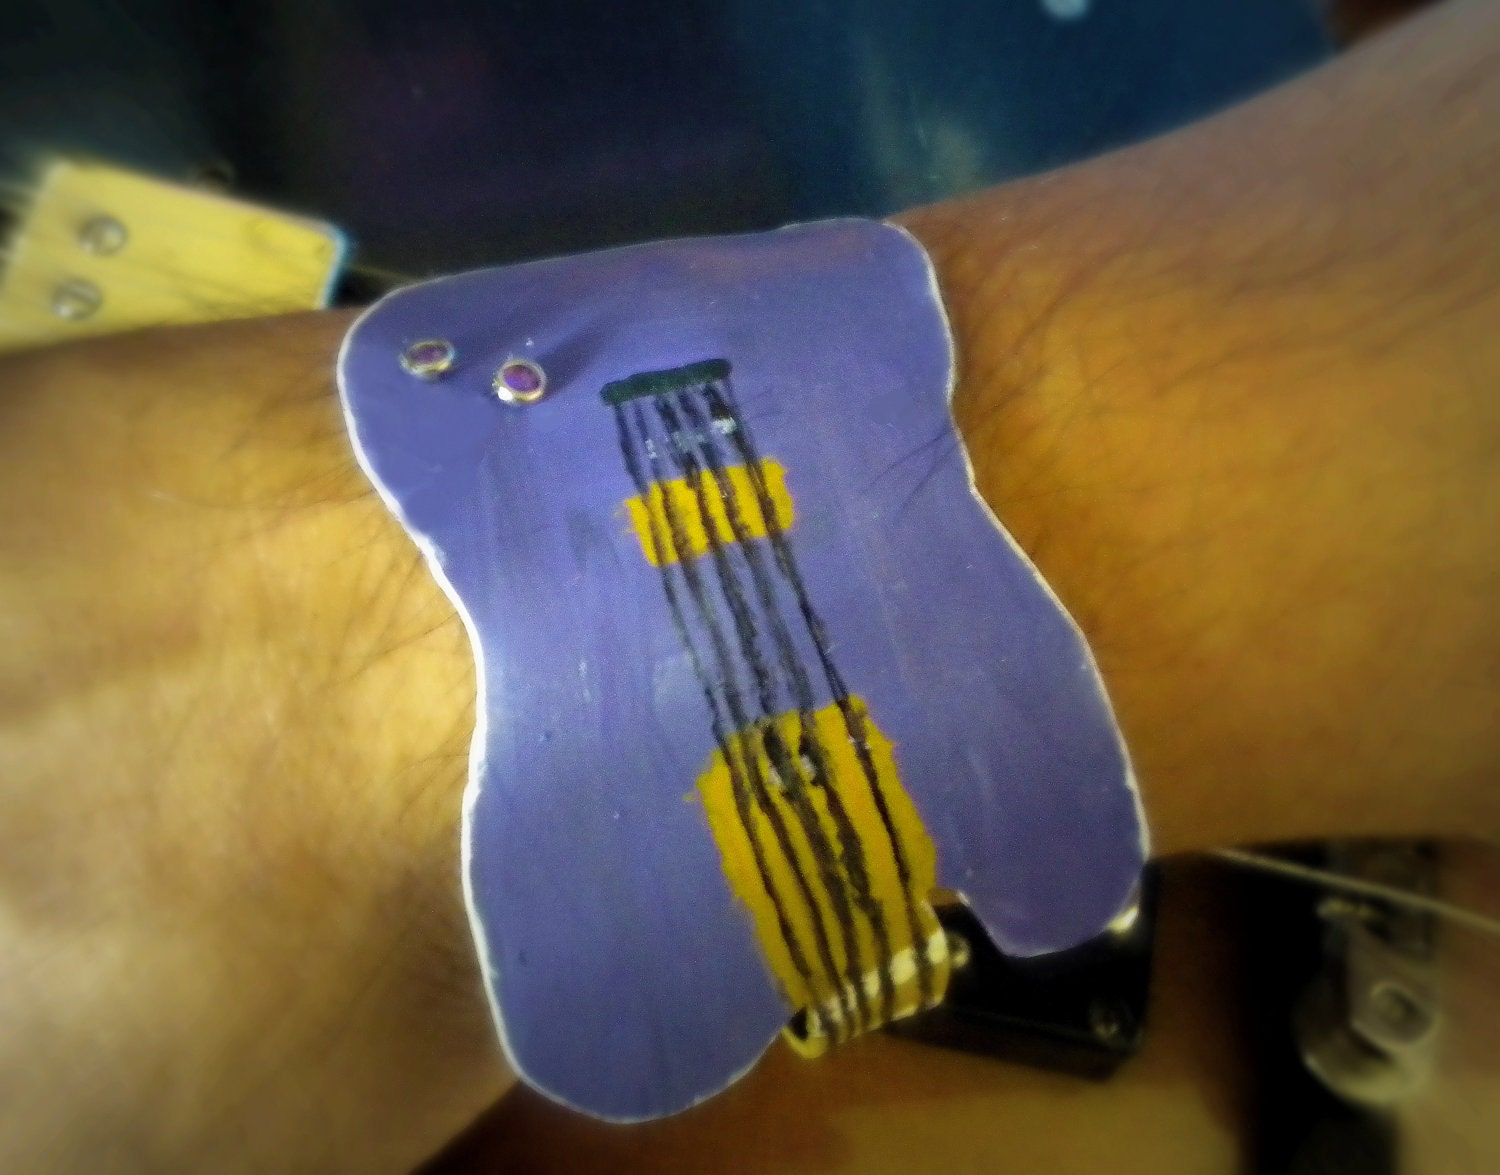 Rock Star Unisex Cuff Bracelet Recycled Vinyl Record Guitar Shaped